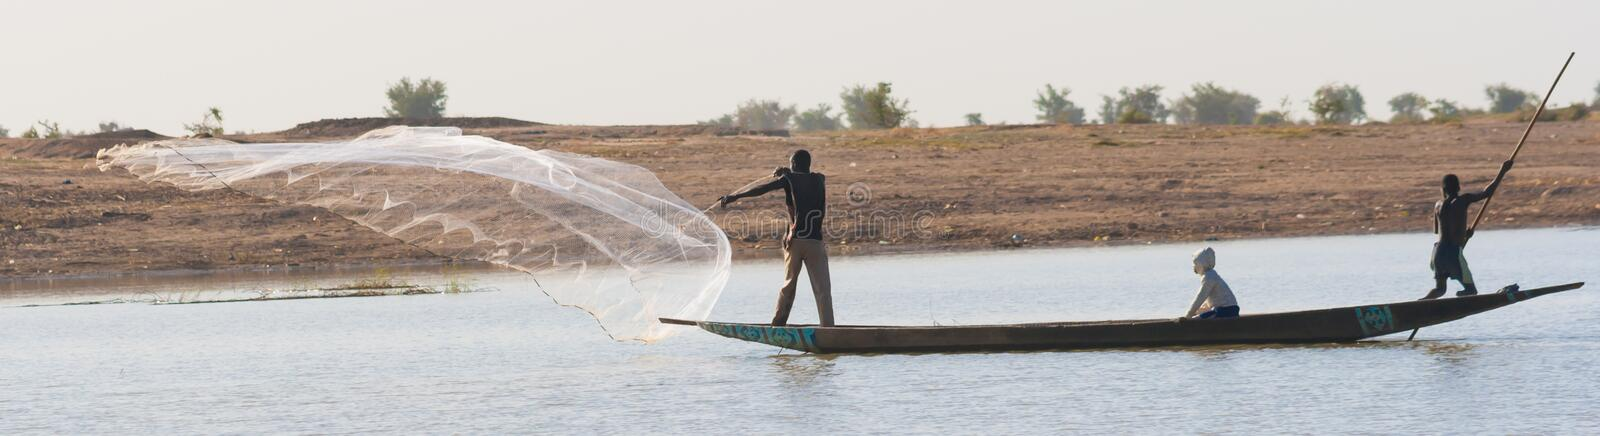 Fisherman casts a net on the Niger River, Mali. Djenné, Mali - December 28, 2009: Fisherman casts nets from pirogue, together with his two sons, on the Niger stock images